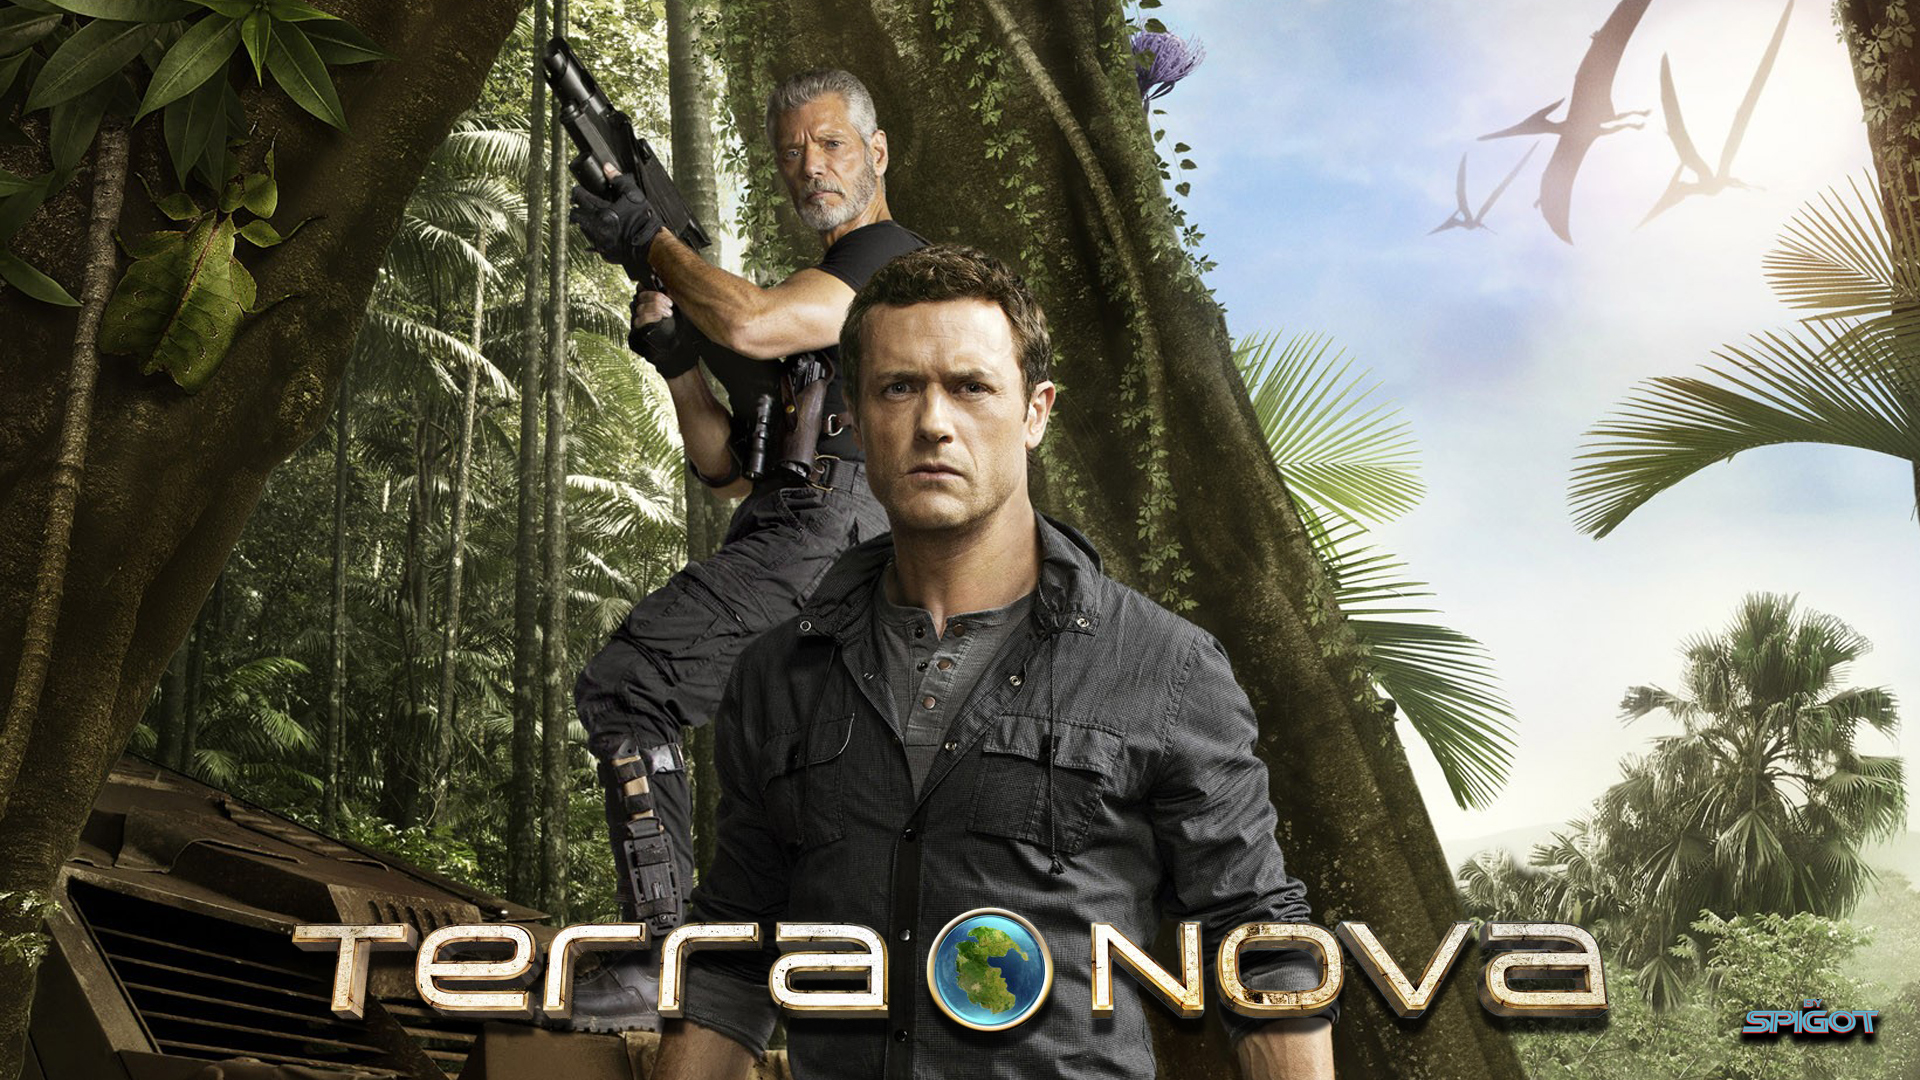 terra nova wallpaper | george spigot's blog